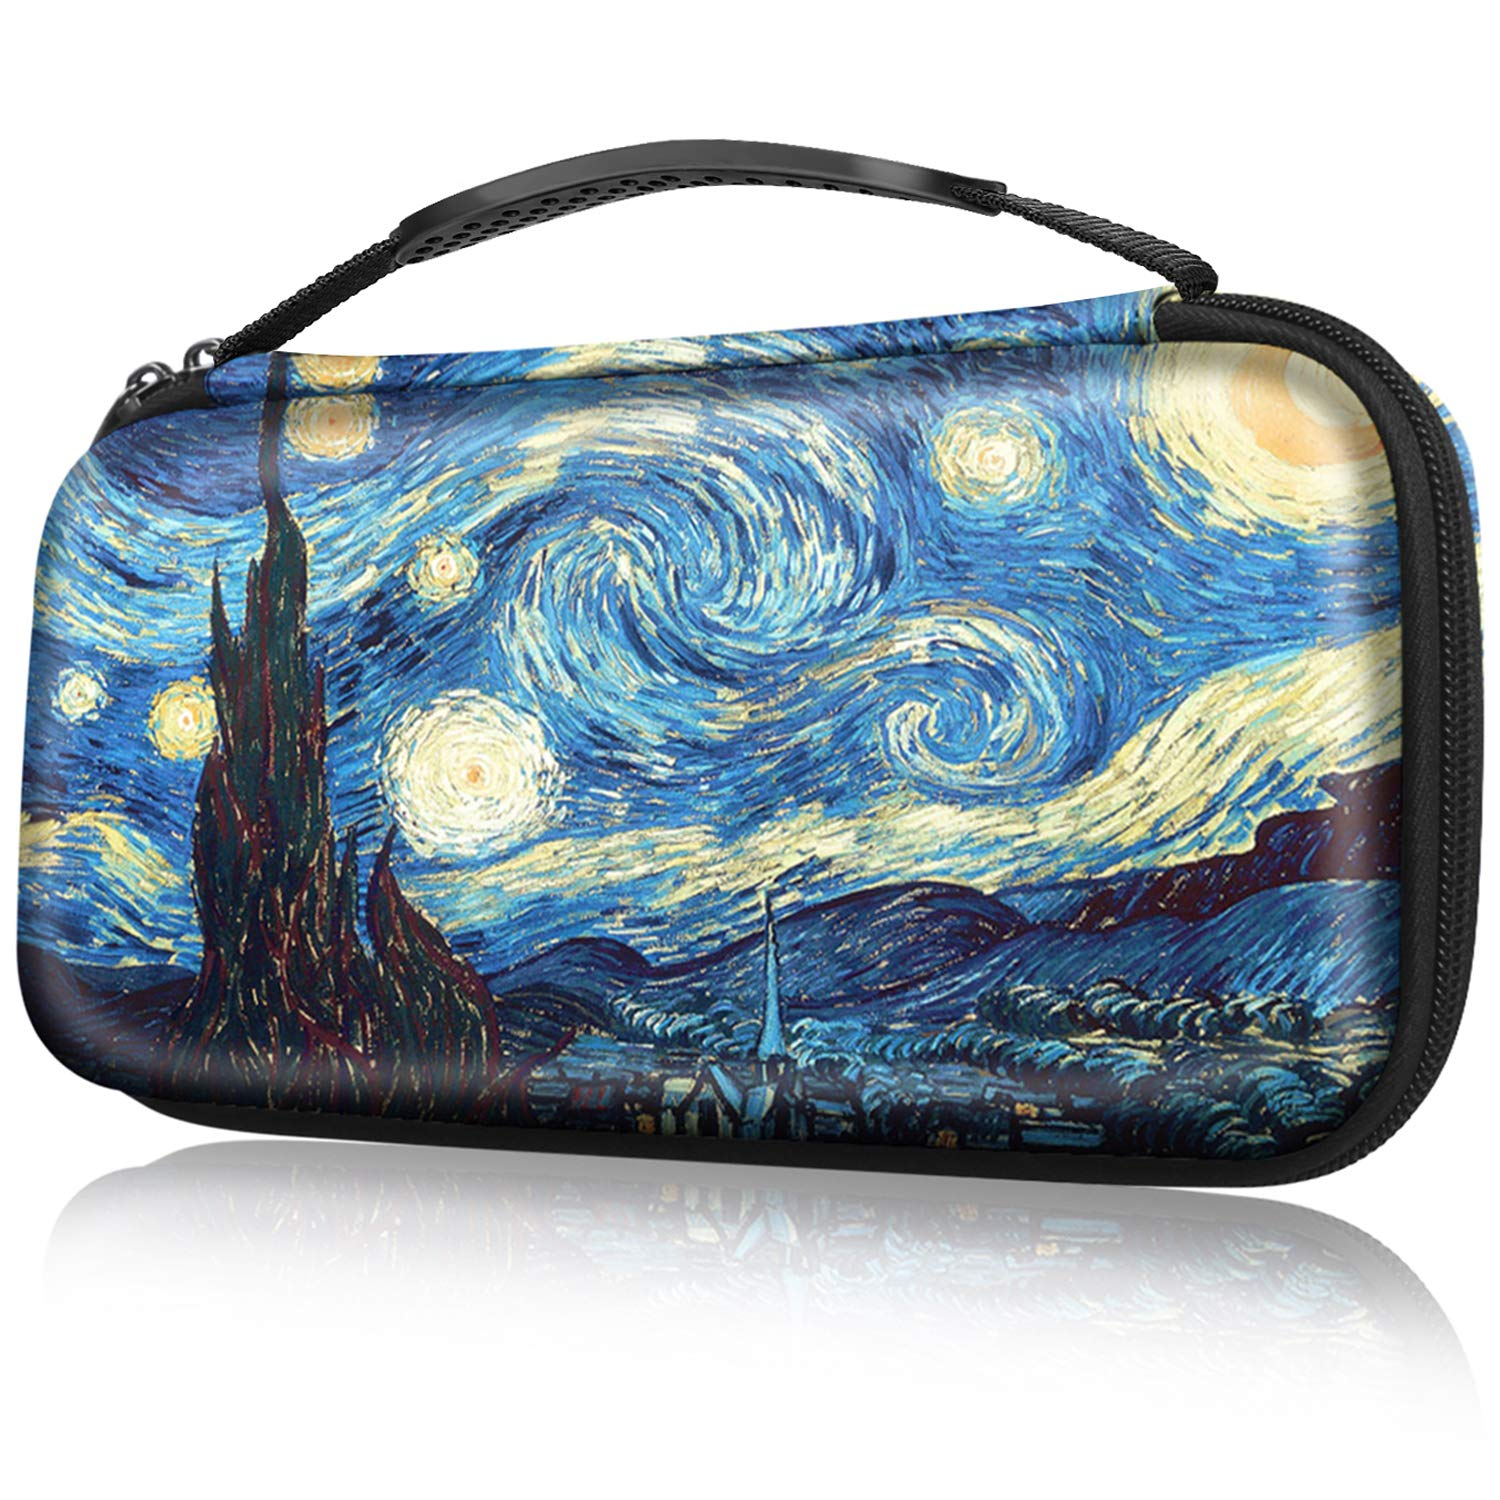 Fintie Carry Case for Nintendo Switch - Portable Traveler Protective Cover Storage Carrying Bag Pouch with 10 Game Card Slots and Inner Pocket for Nintendo Switch Console Joy-Con, Starry Night